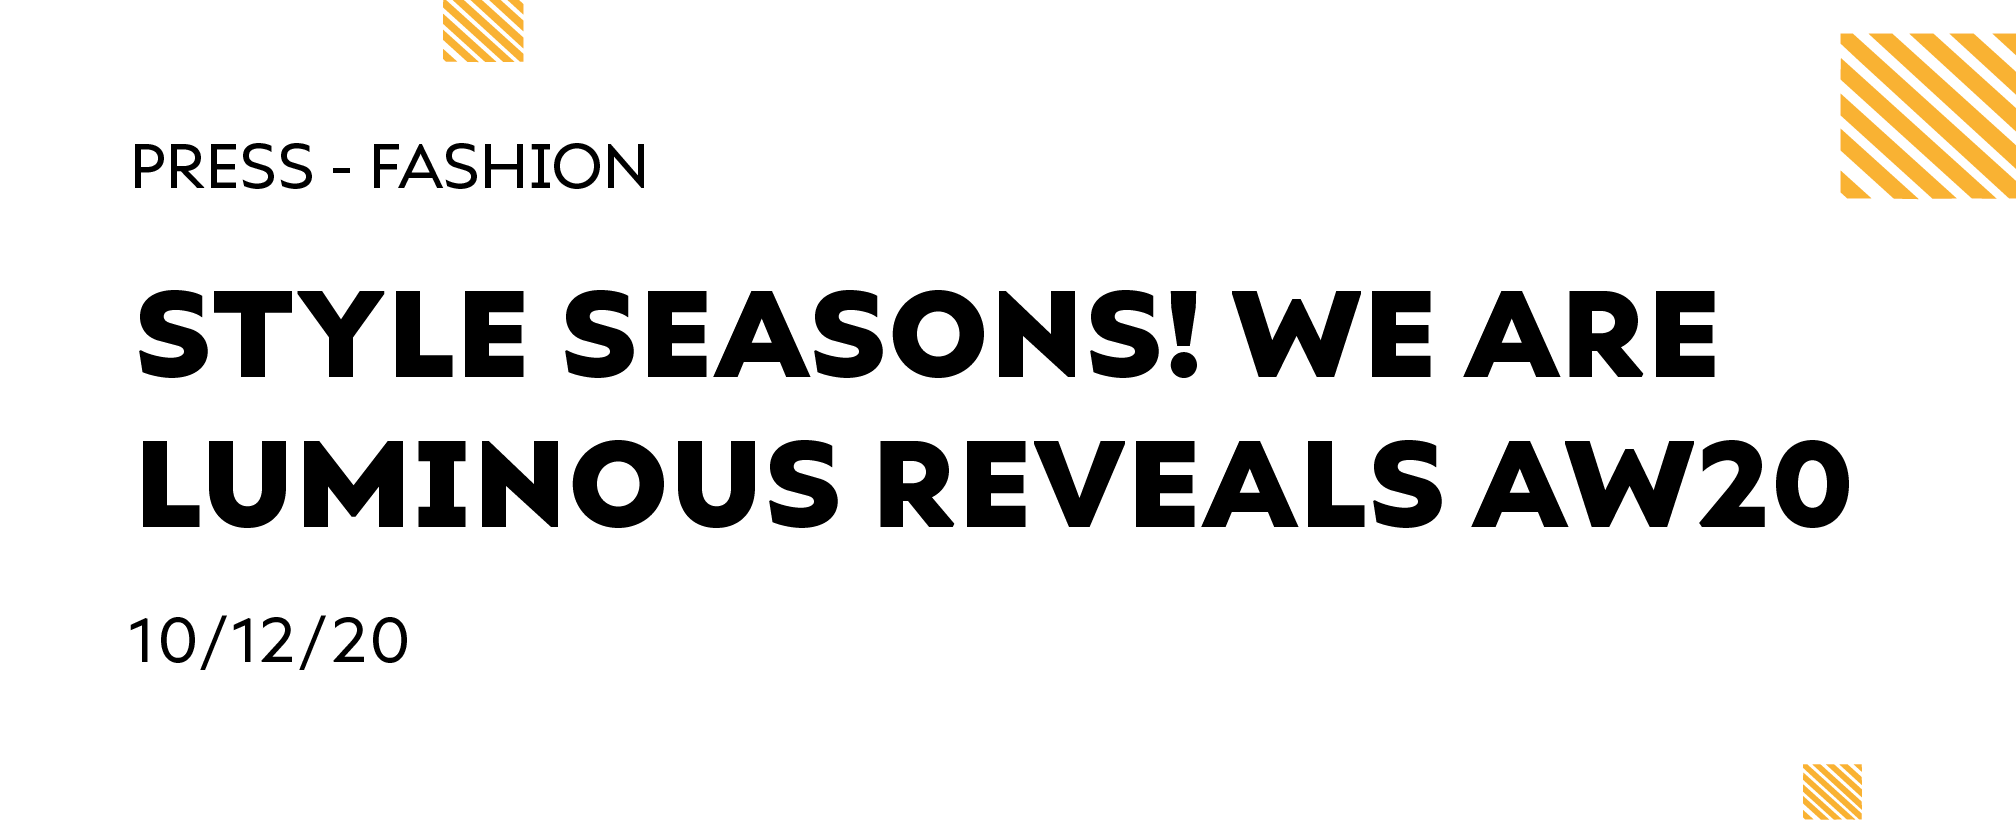 Style Seasons! We Are Luminous Reveals AW20